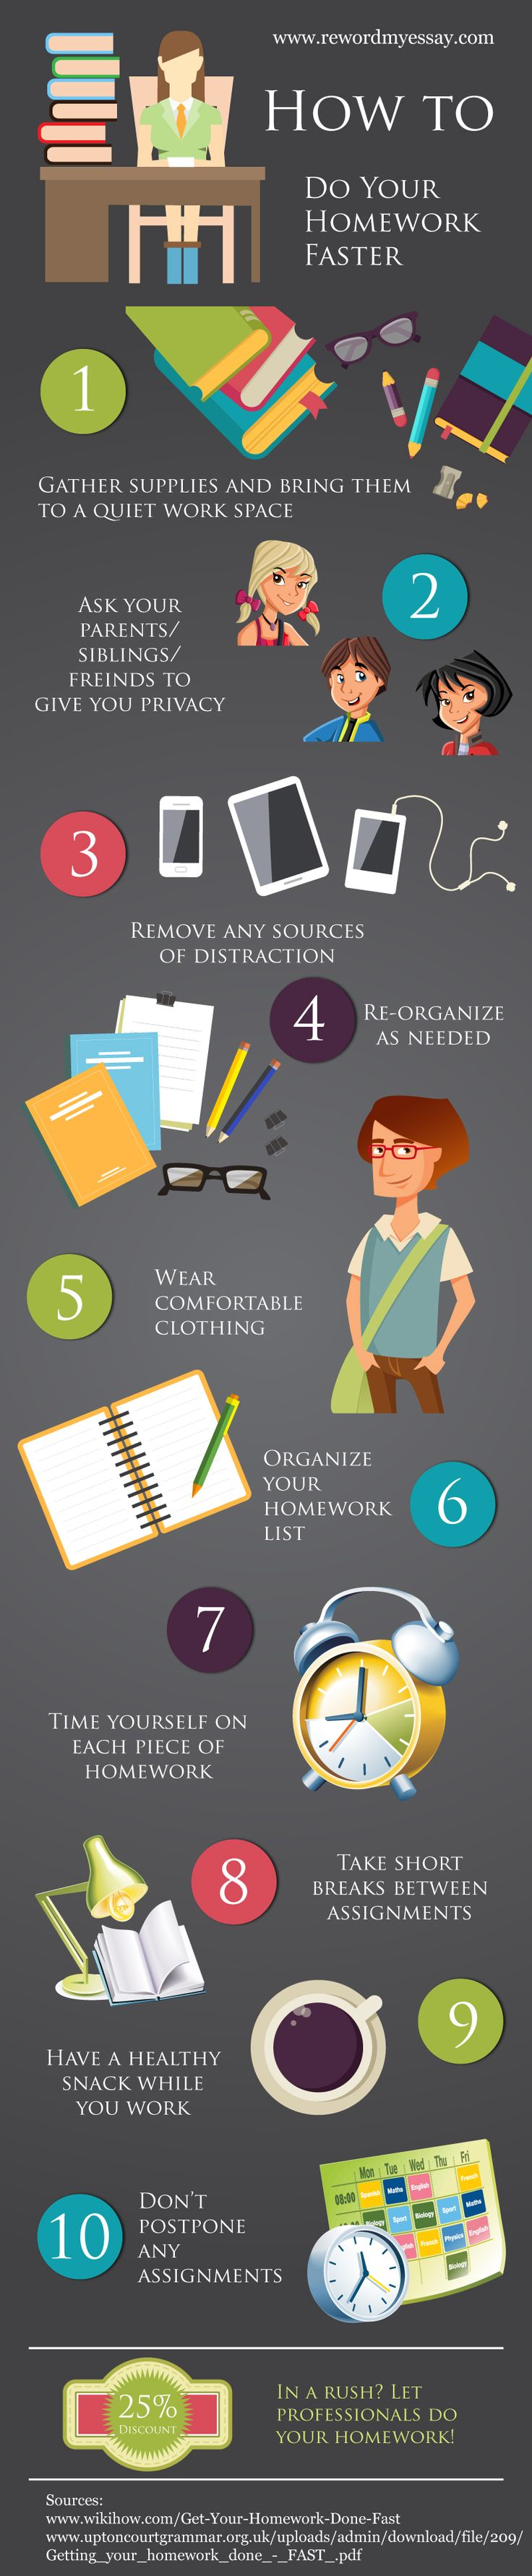 best ideas about homework motivation school tips this infographic presentation presents how to do your homework faster to get the service at low cast please here